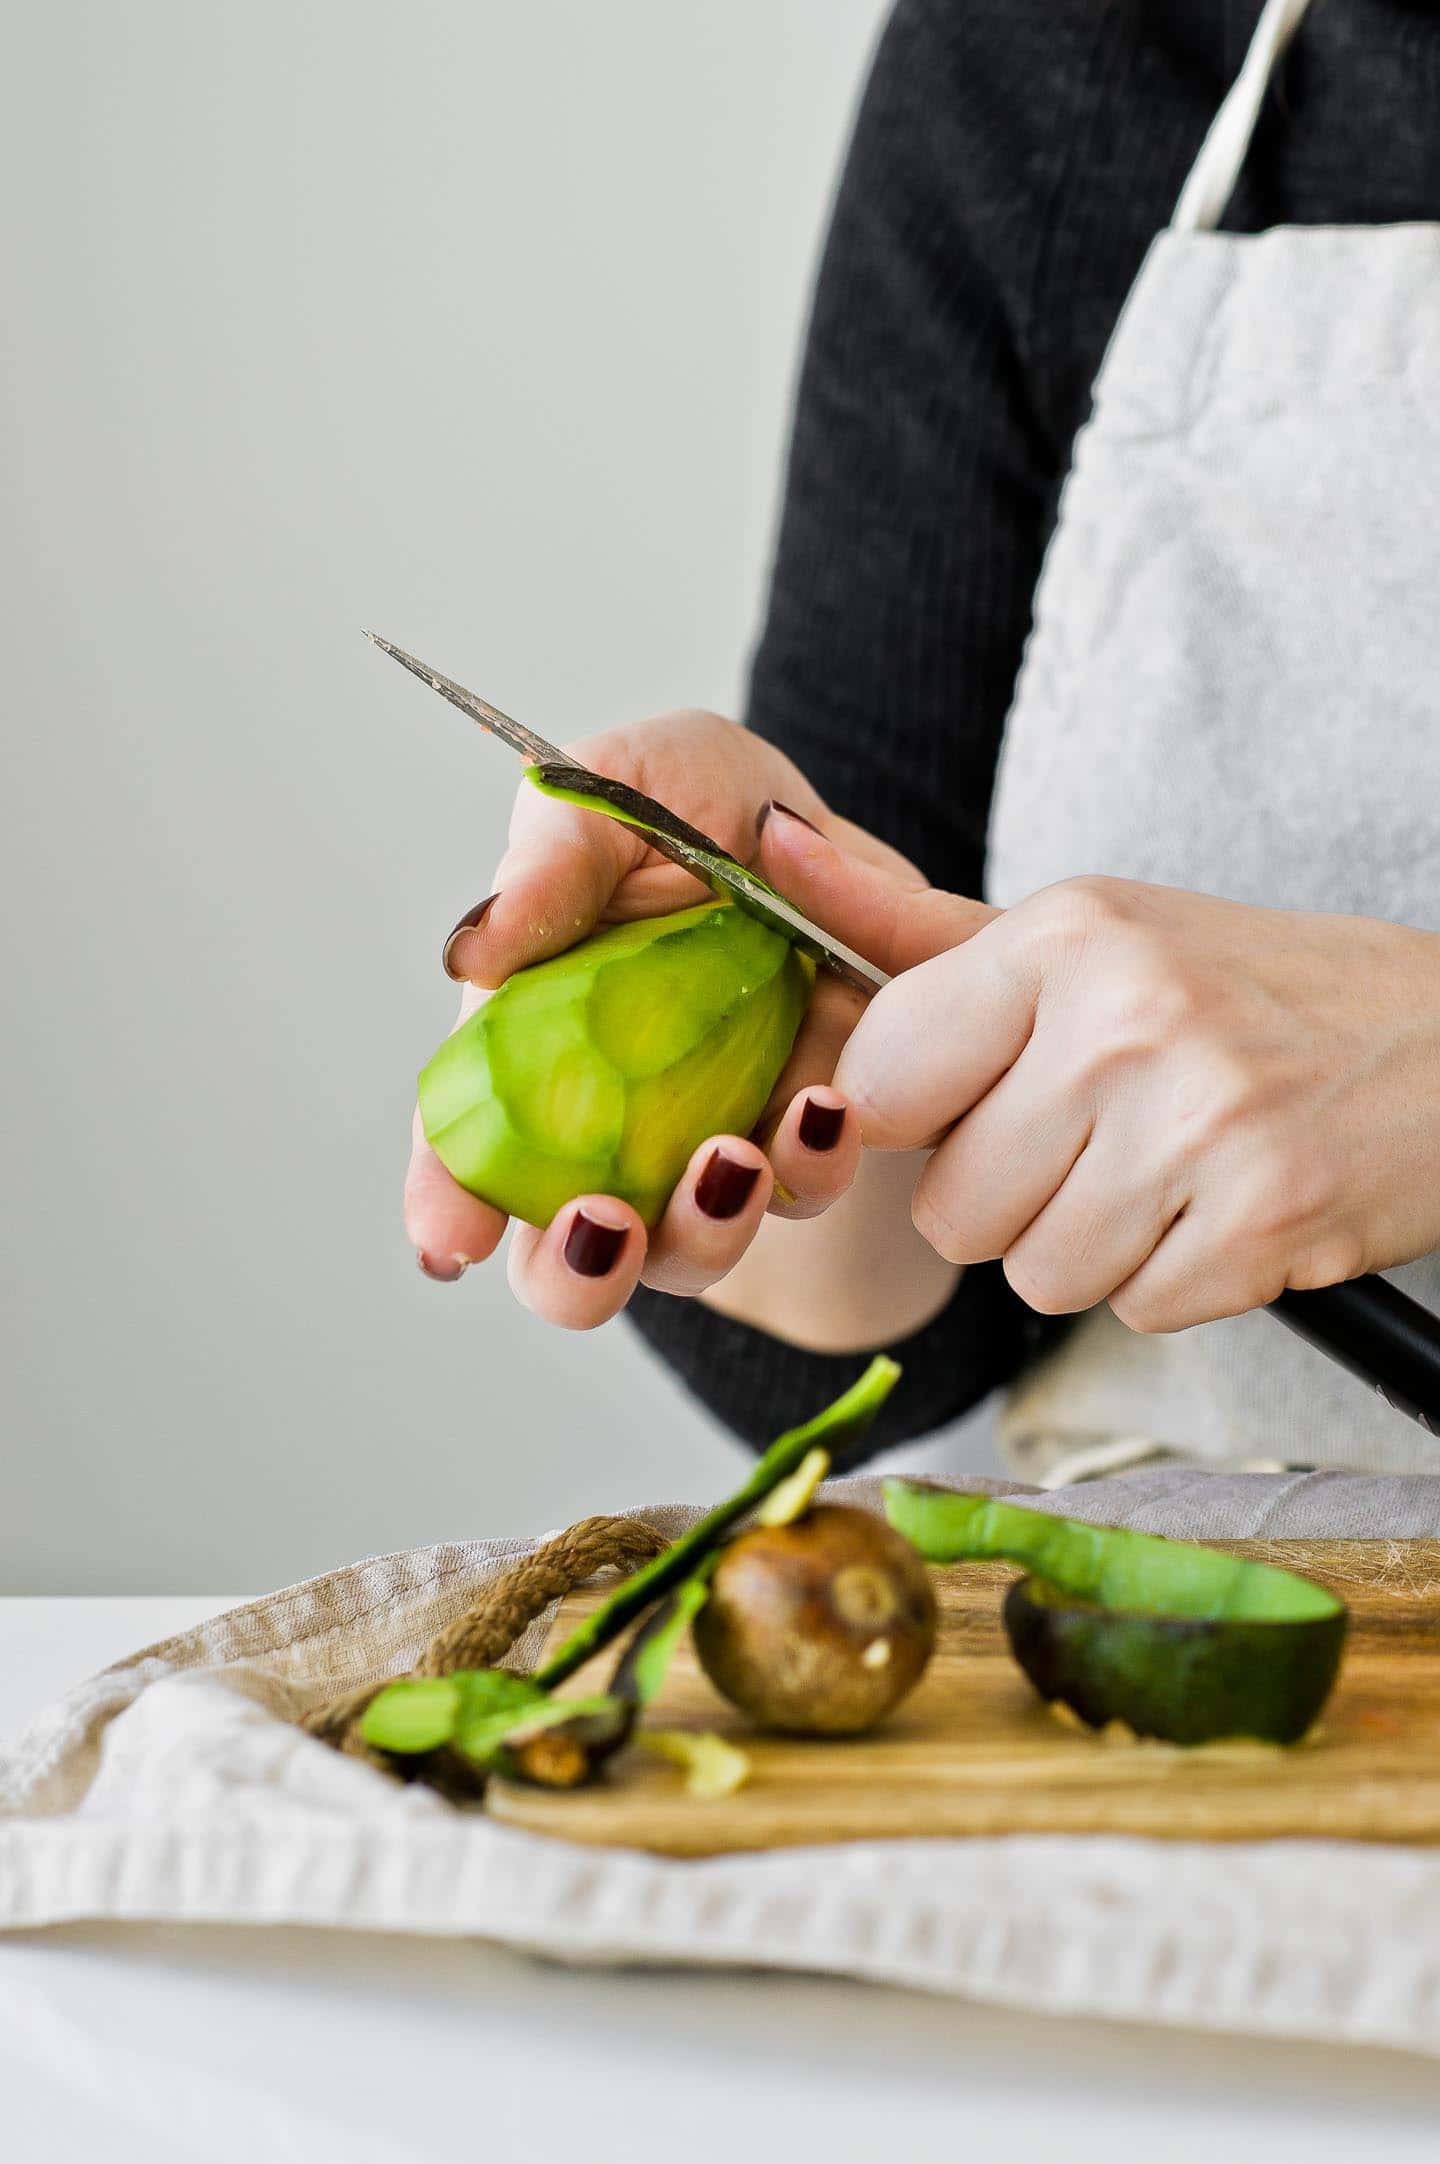 chef is peeling an avocado with a knife.